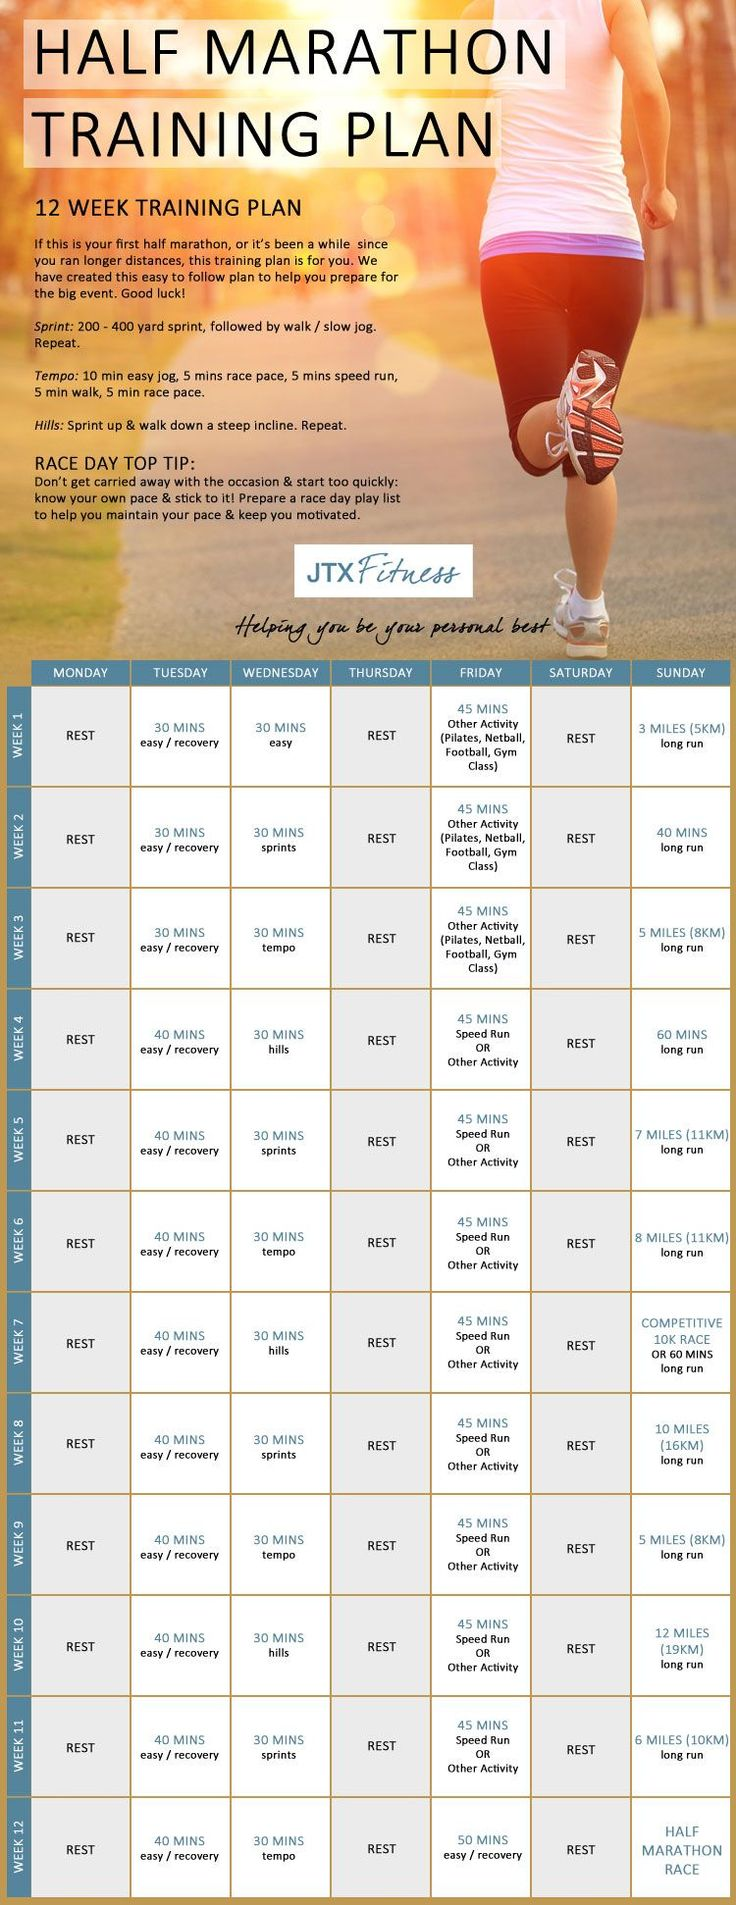 12 Week Half Marathon Training Plan- http://www.jtxfitness.com/best/12-week-half-marathon-training-plan/